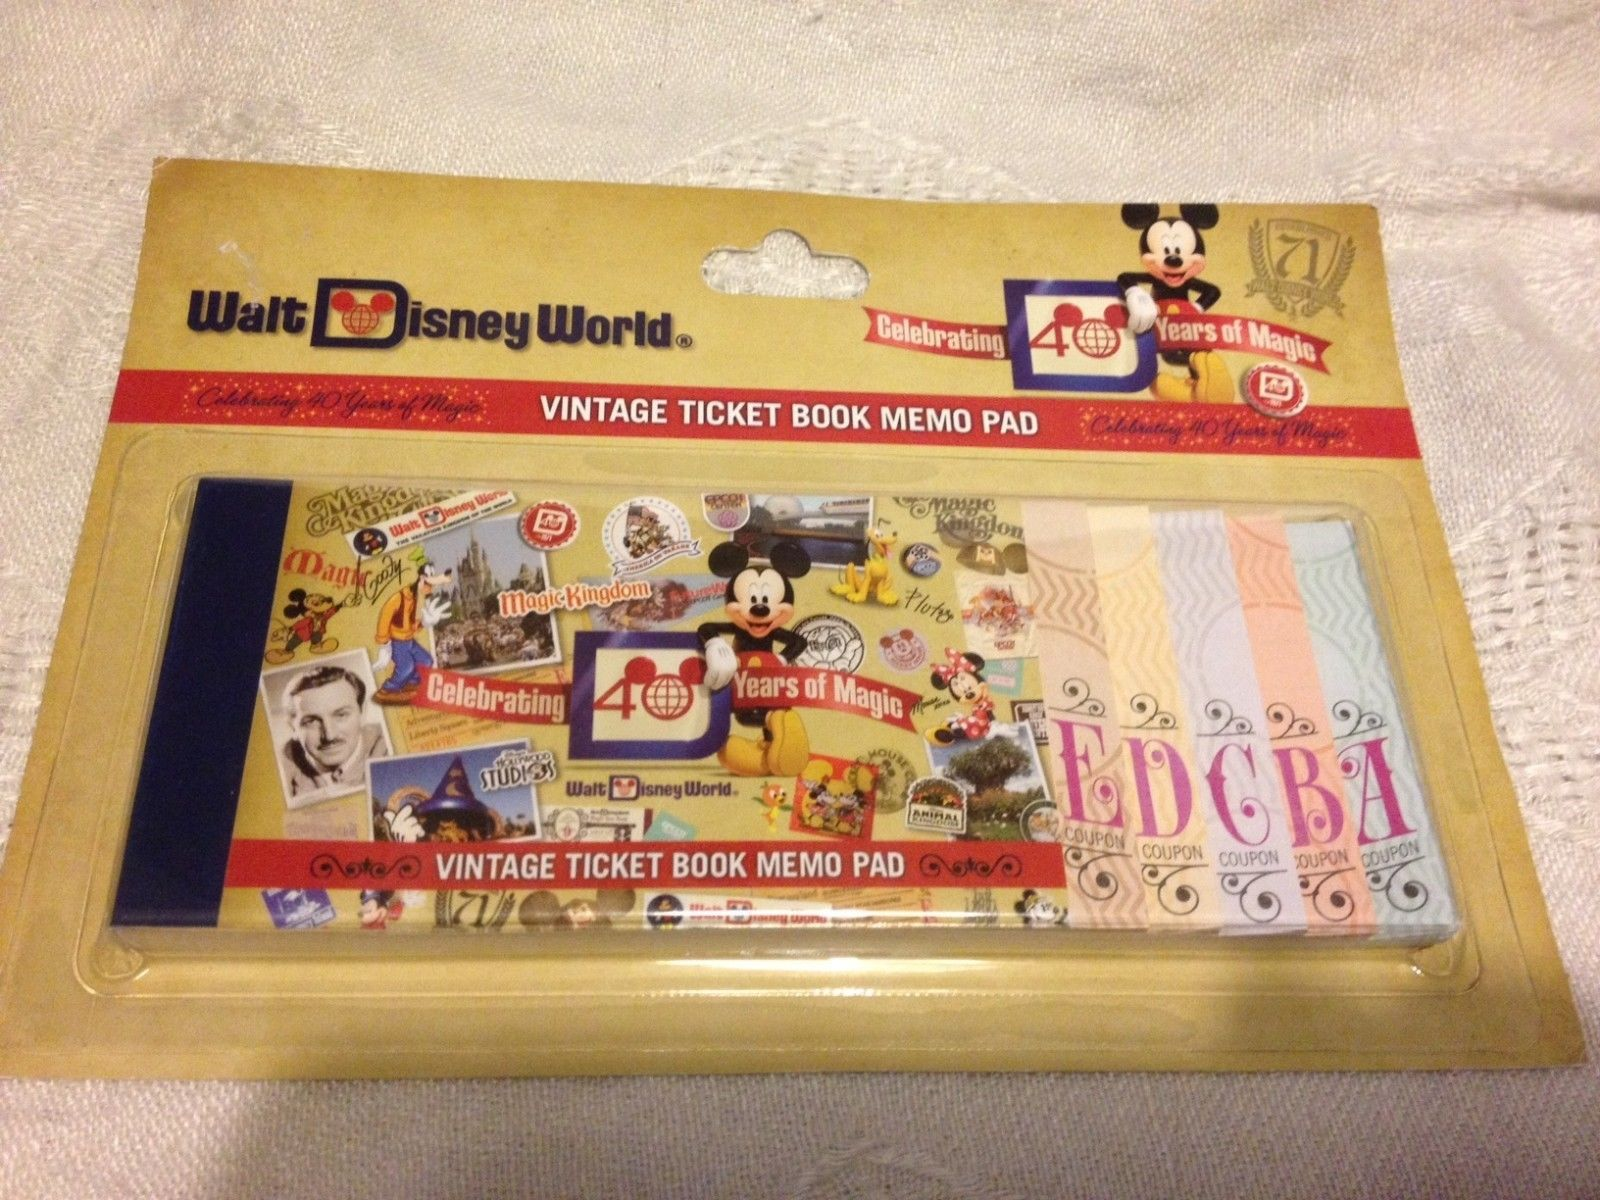 Walt Disney World Vintage Ticket Book Memo Pad NEW 2011